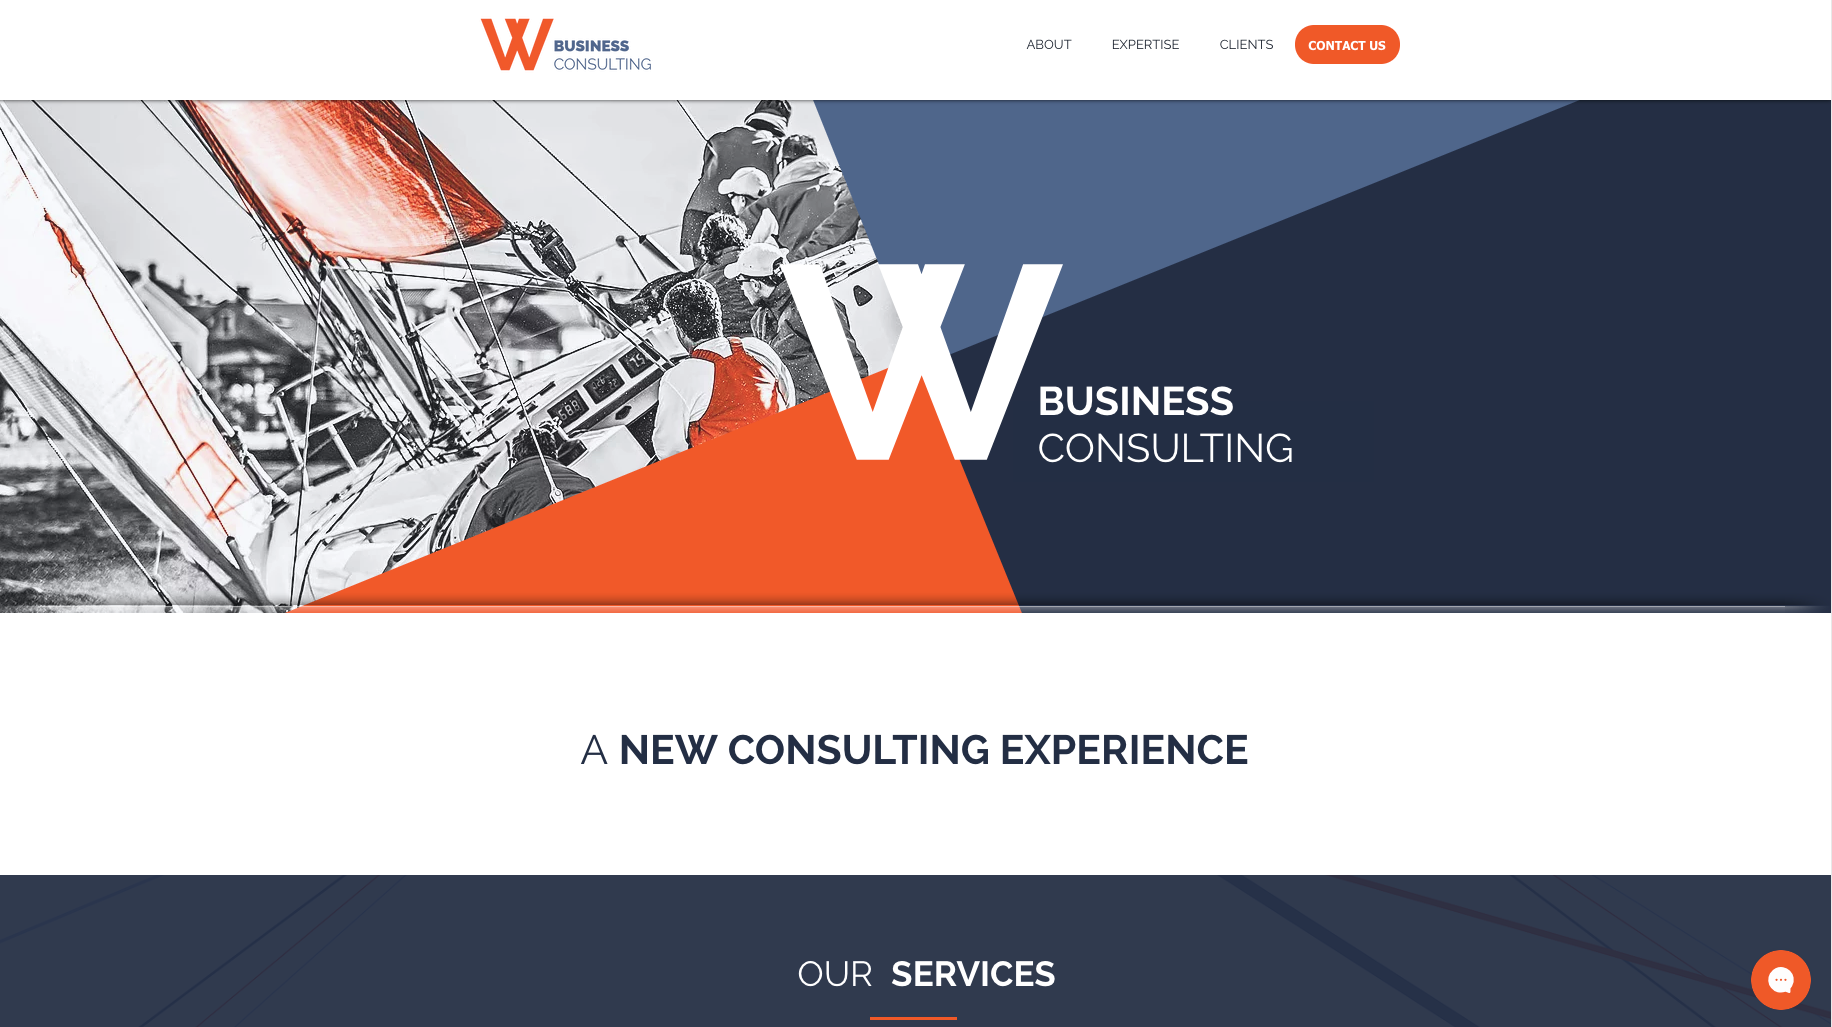 W Business Consulting - Branding & Web Design